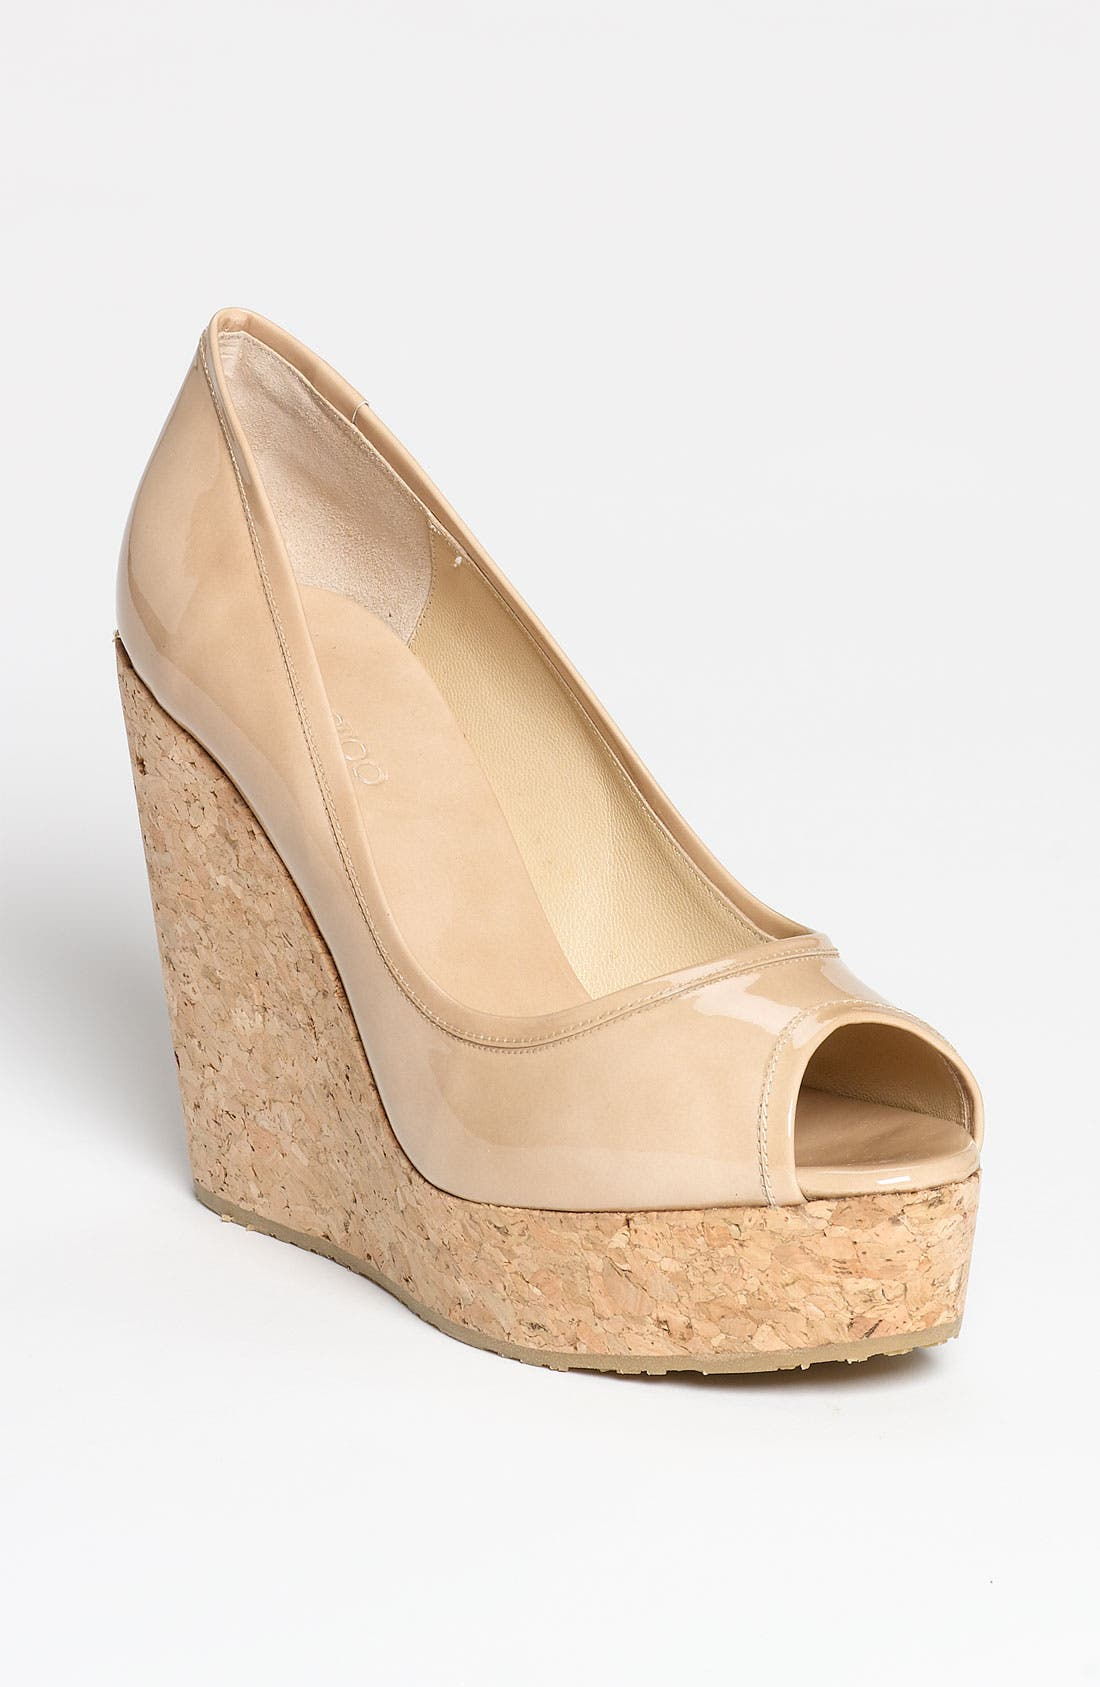 Main Image - Jimmy Choo 'Papina' Pump